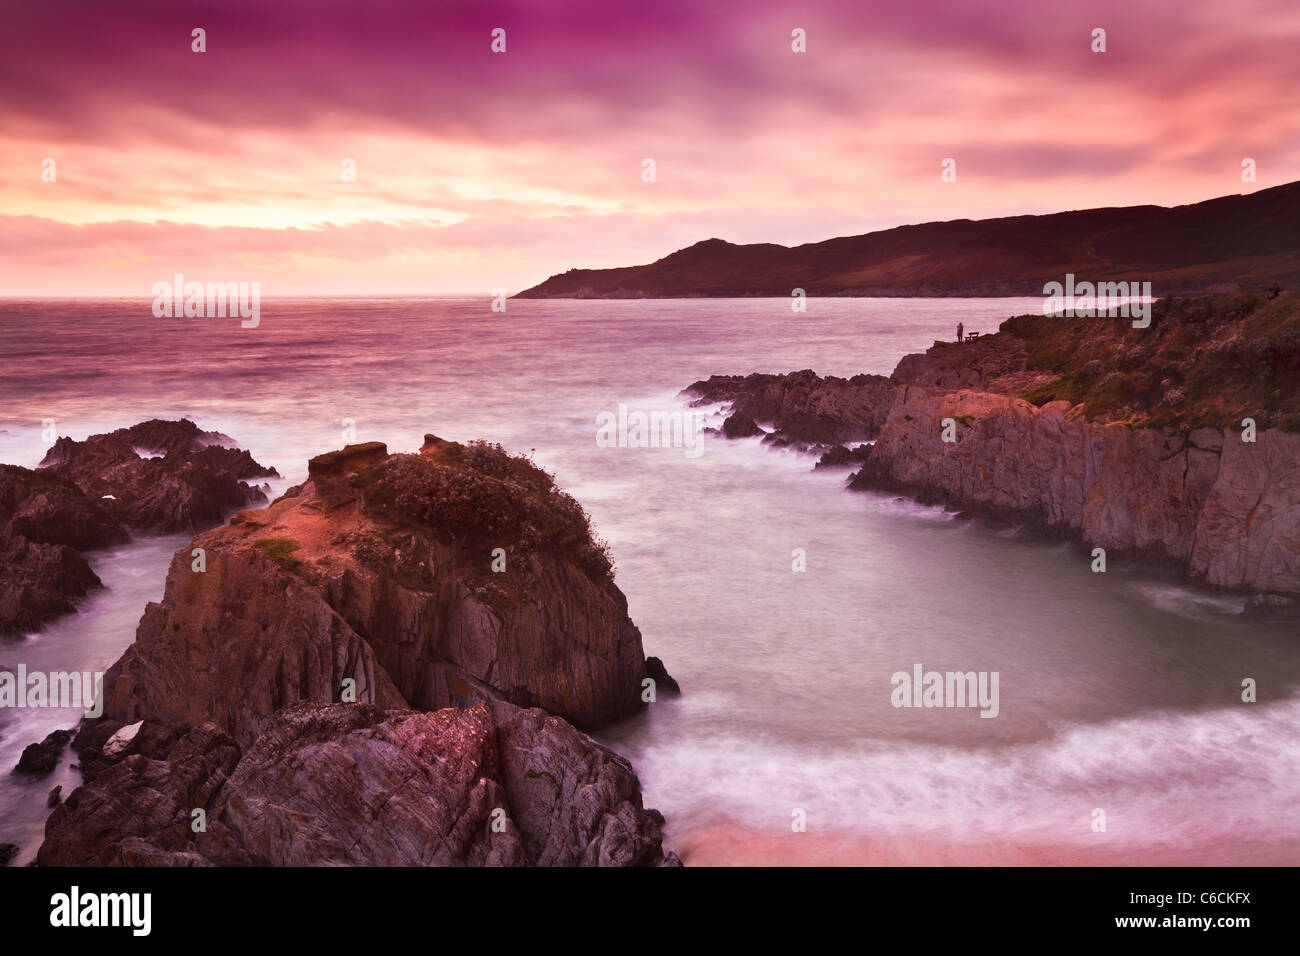 Sunset over the Bristol Channel from Barricane Beach, Woolacombe,looking towards Morte Point, North Devon, England, - Stock Image